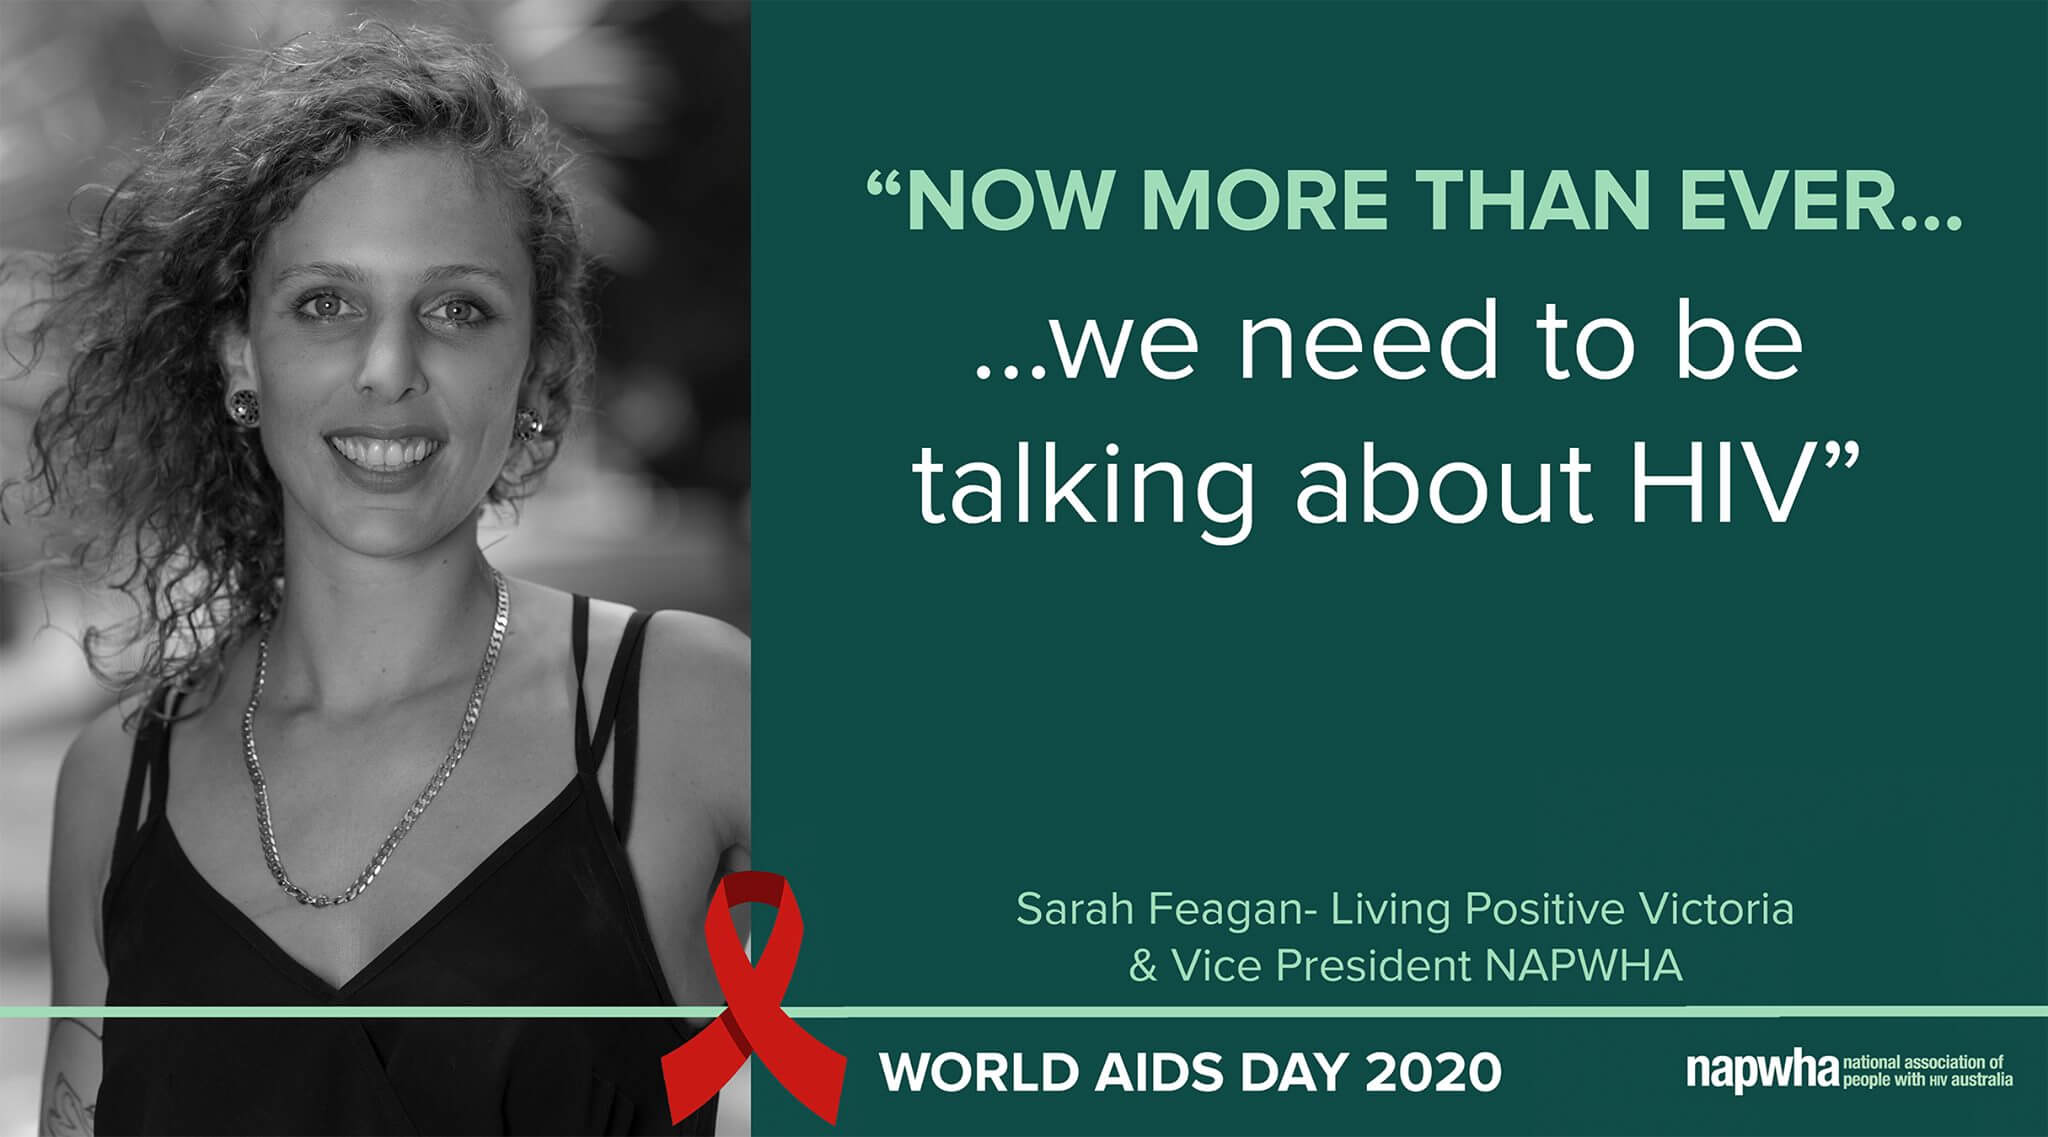 Sarah Feagan, Vice-President of NAPWHA and of Living Positive Victoria provides a World AIDS Day 2020 message